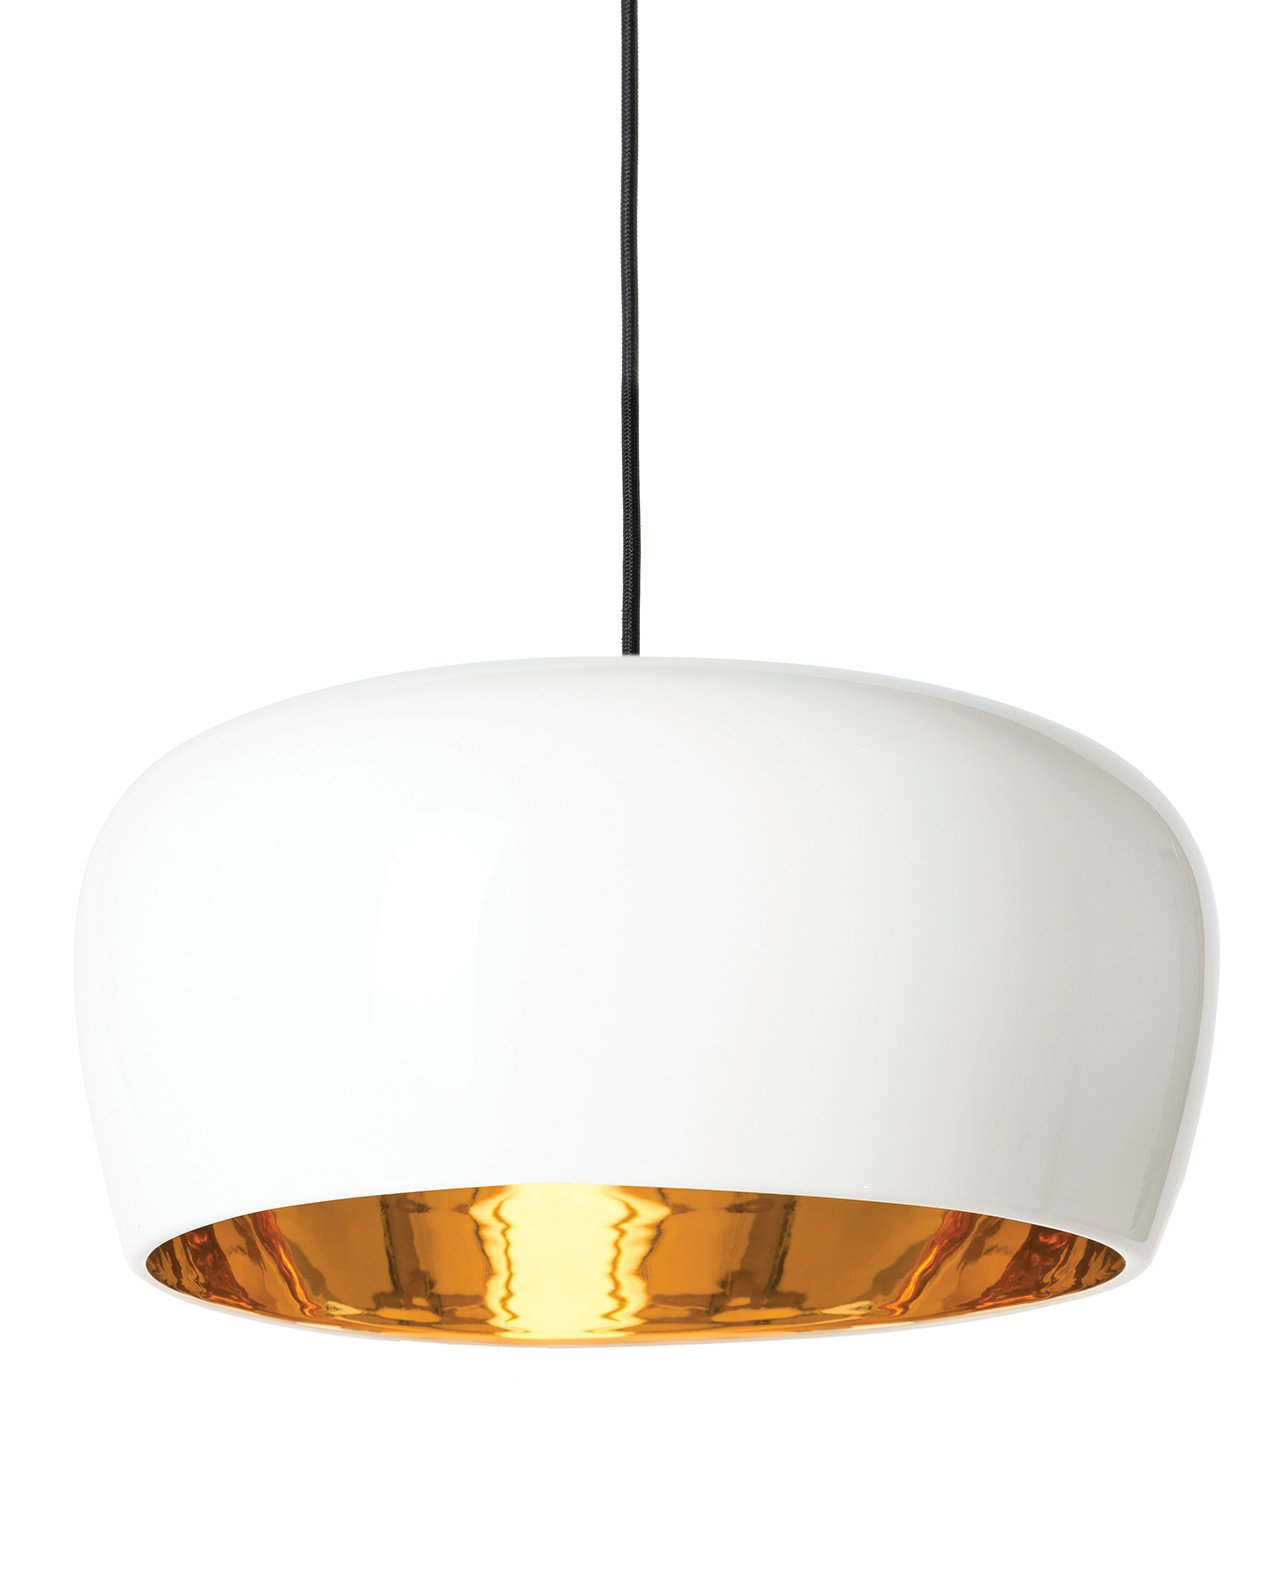 Coppola Suspension Lamp ($390)  Photo 12 of 19 in This Is How an Aussie Model Decorates a Family Home—and It's So Cool